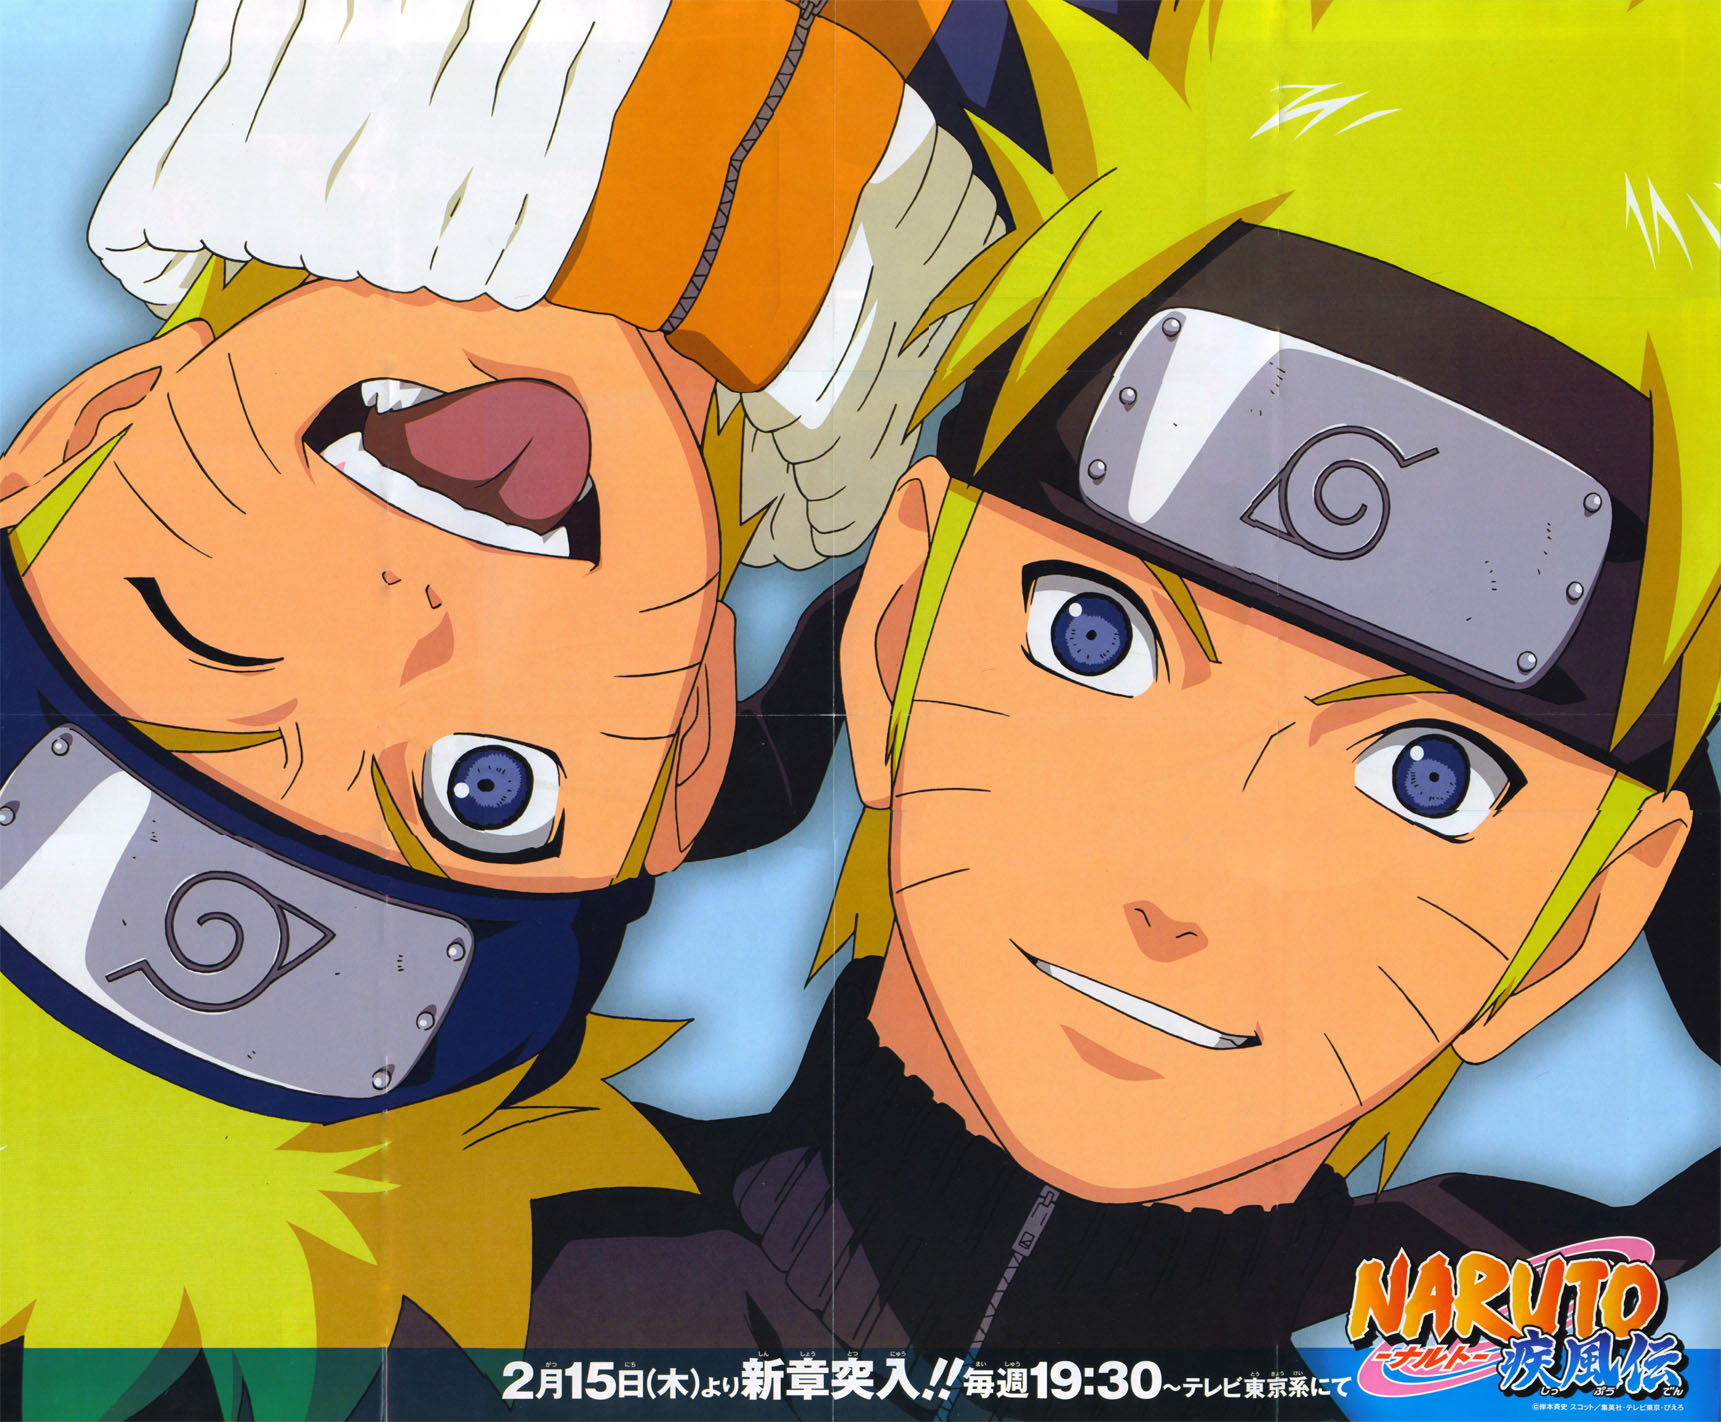 Naruto's Face from the Original and Shippuden Series